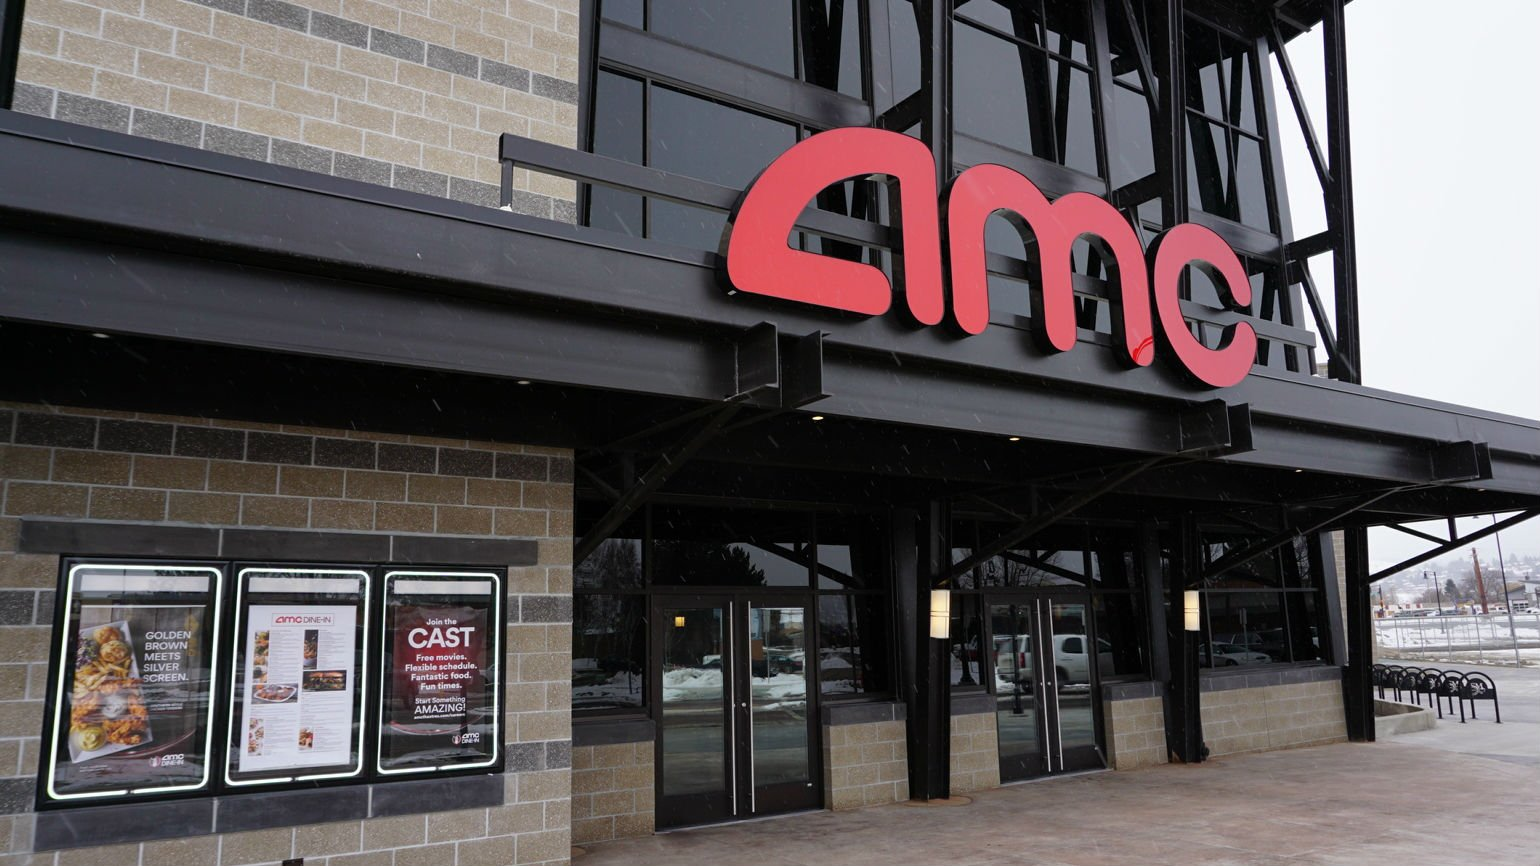 Amc Theatres Unveils 20 A Month Rival To Moviepass Kulr8